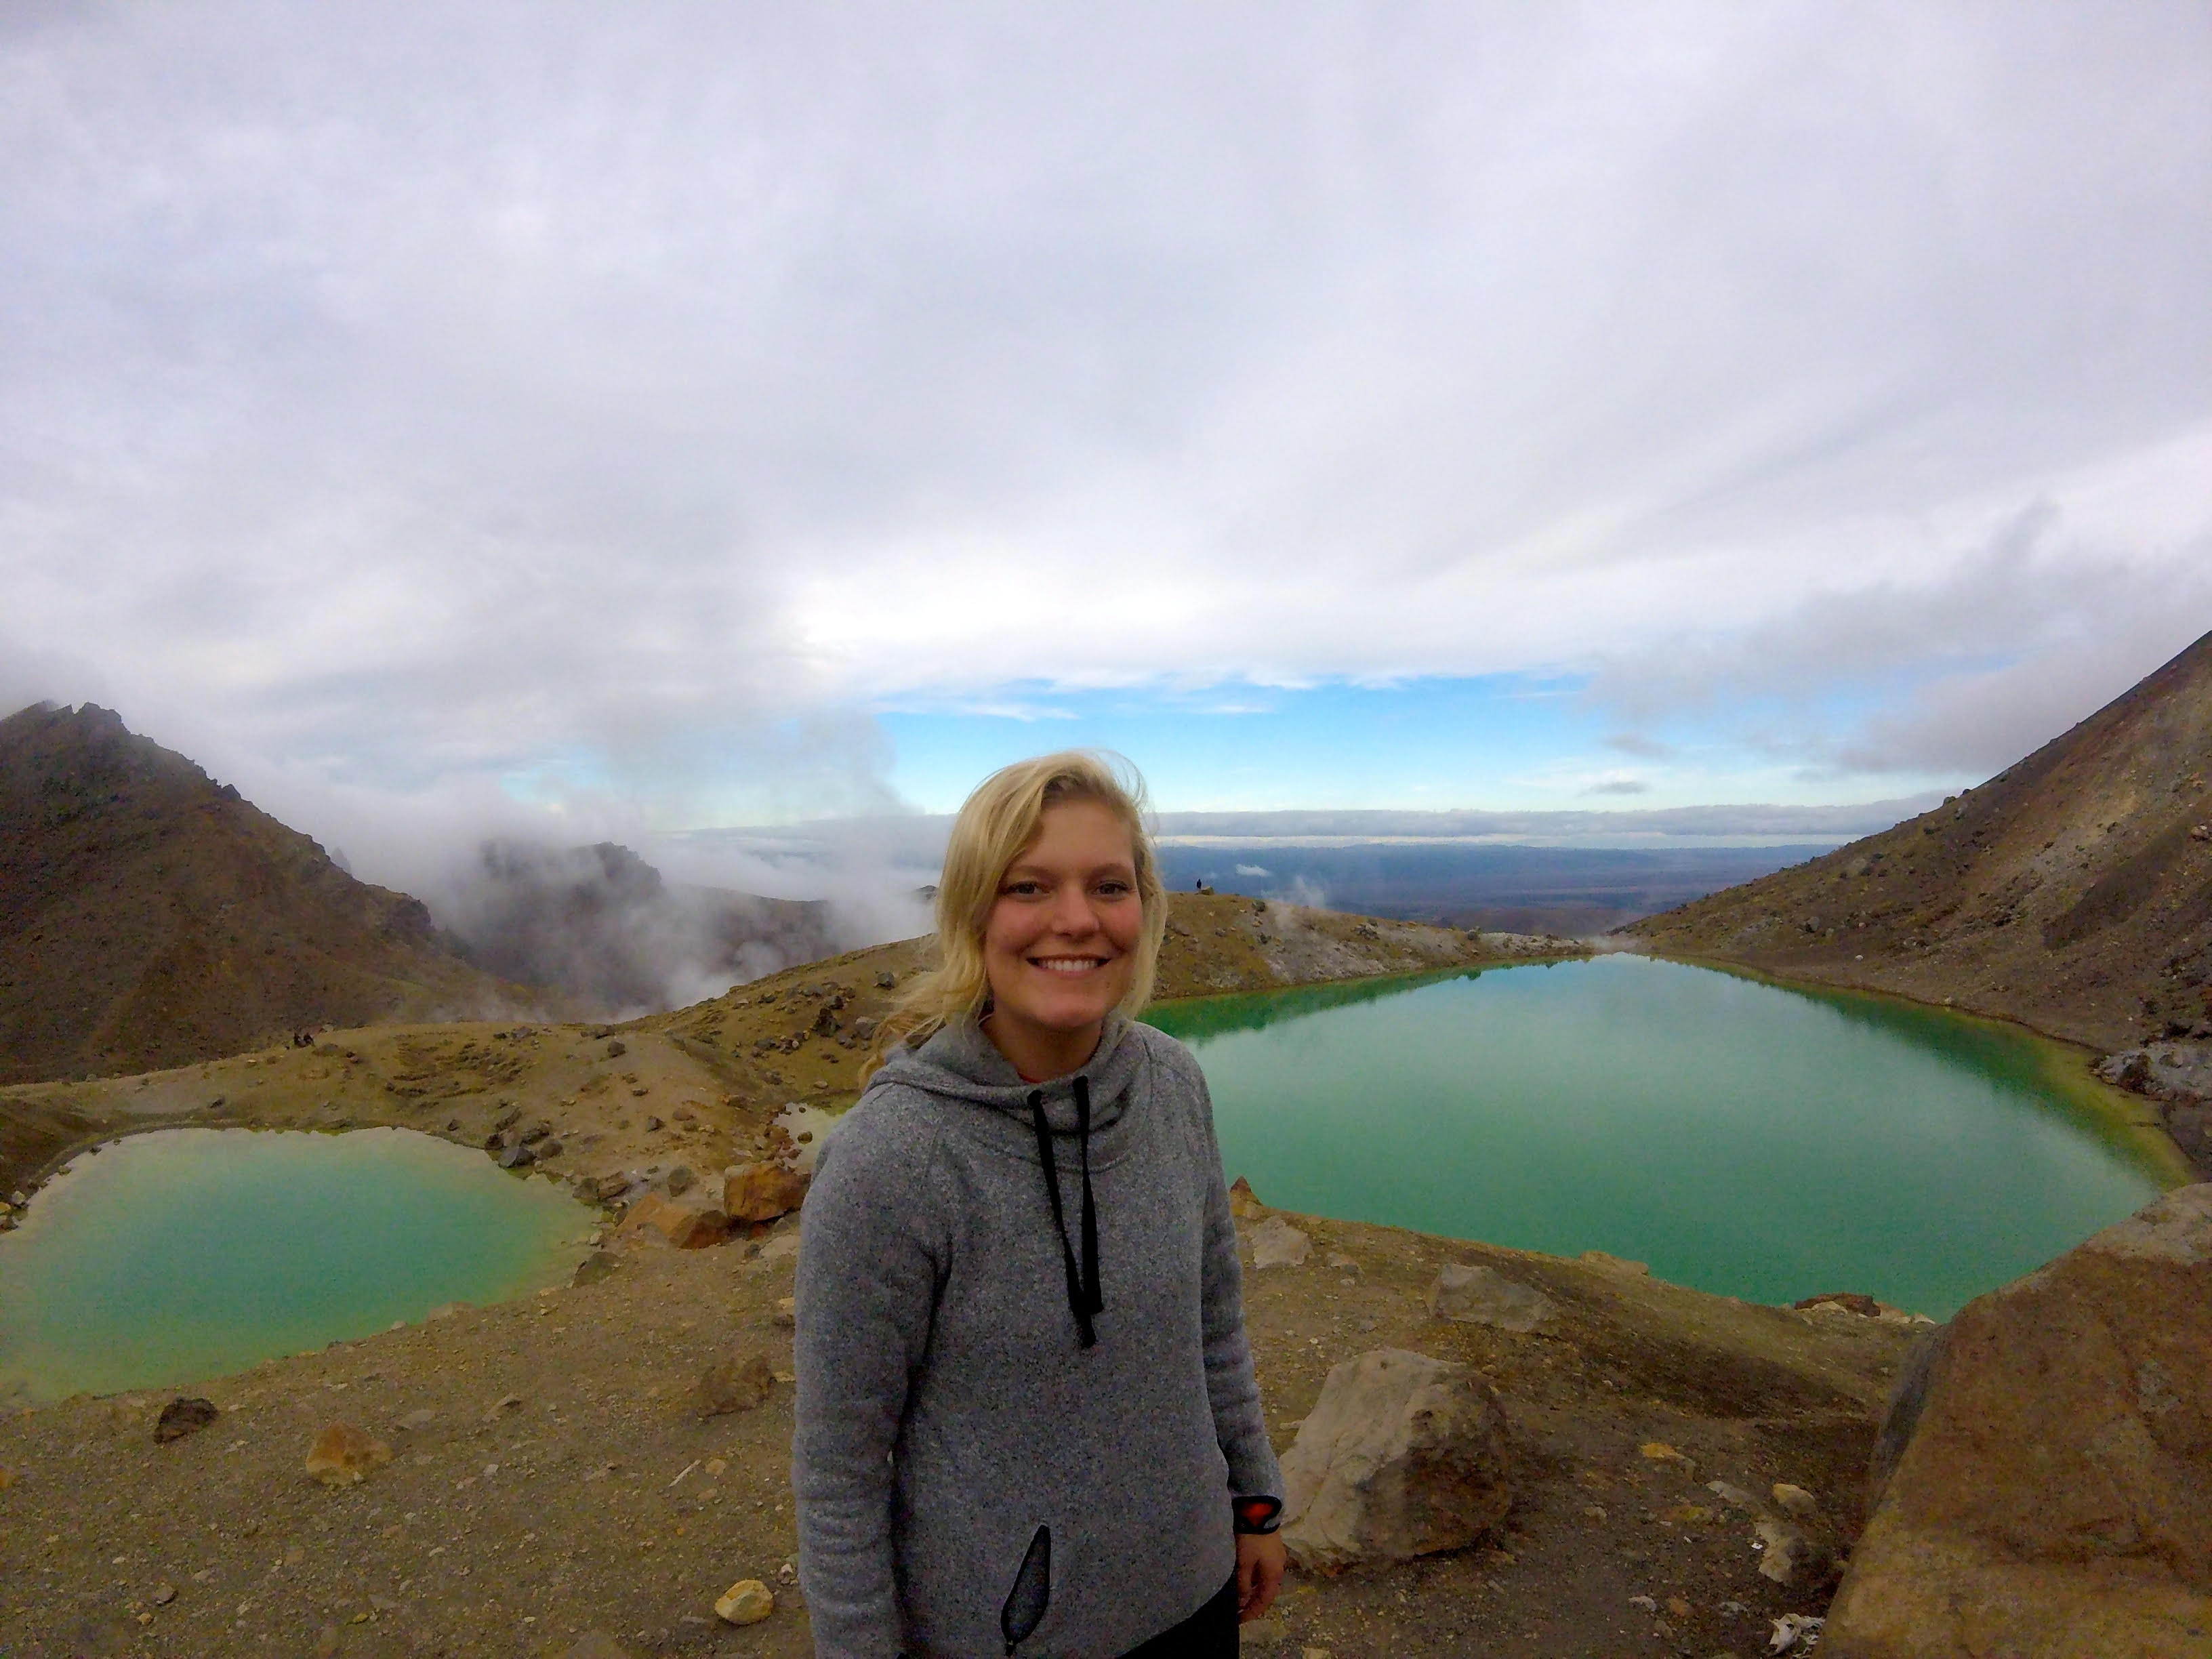 Kim Ferguson ('18 psychology and statistics) studied at Deakin University in Australia. This photo was taken on the Tongariro Alpine Crossing in New Zealand.